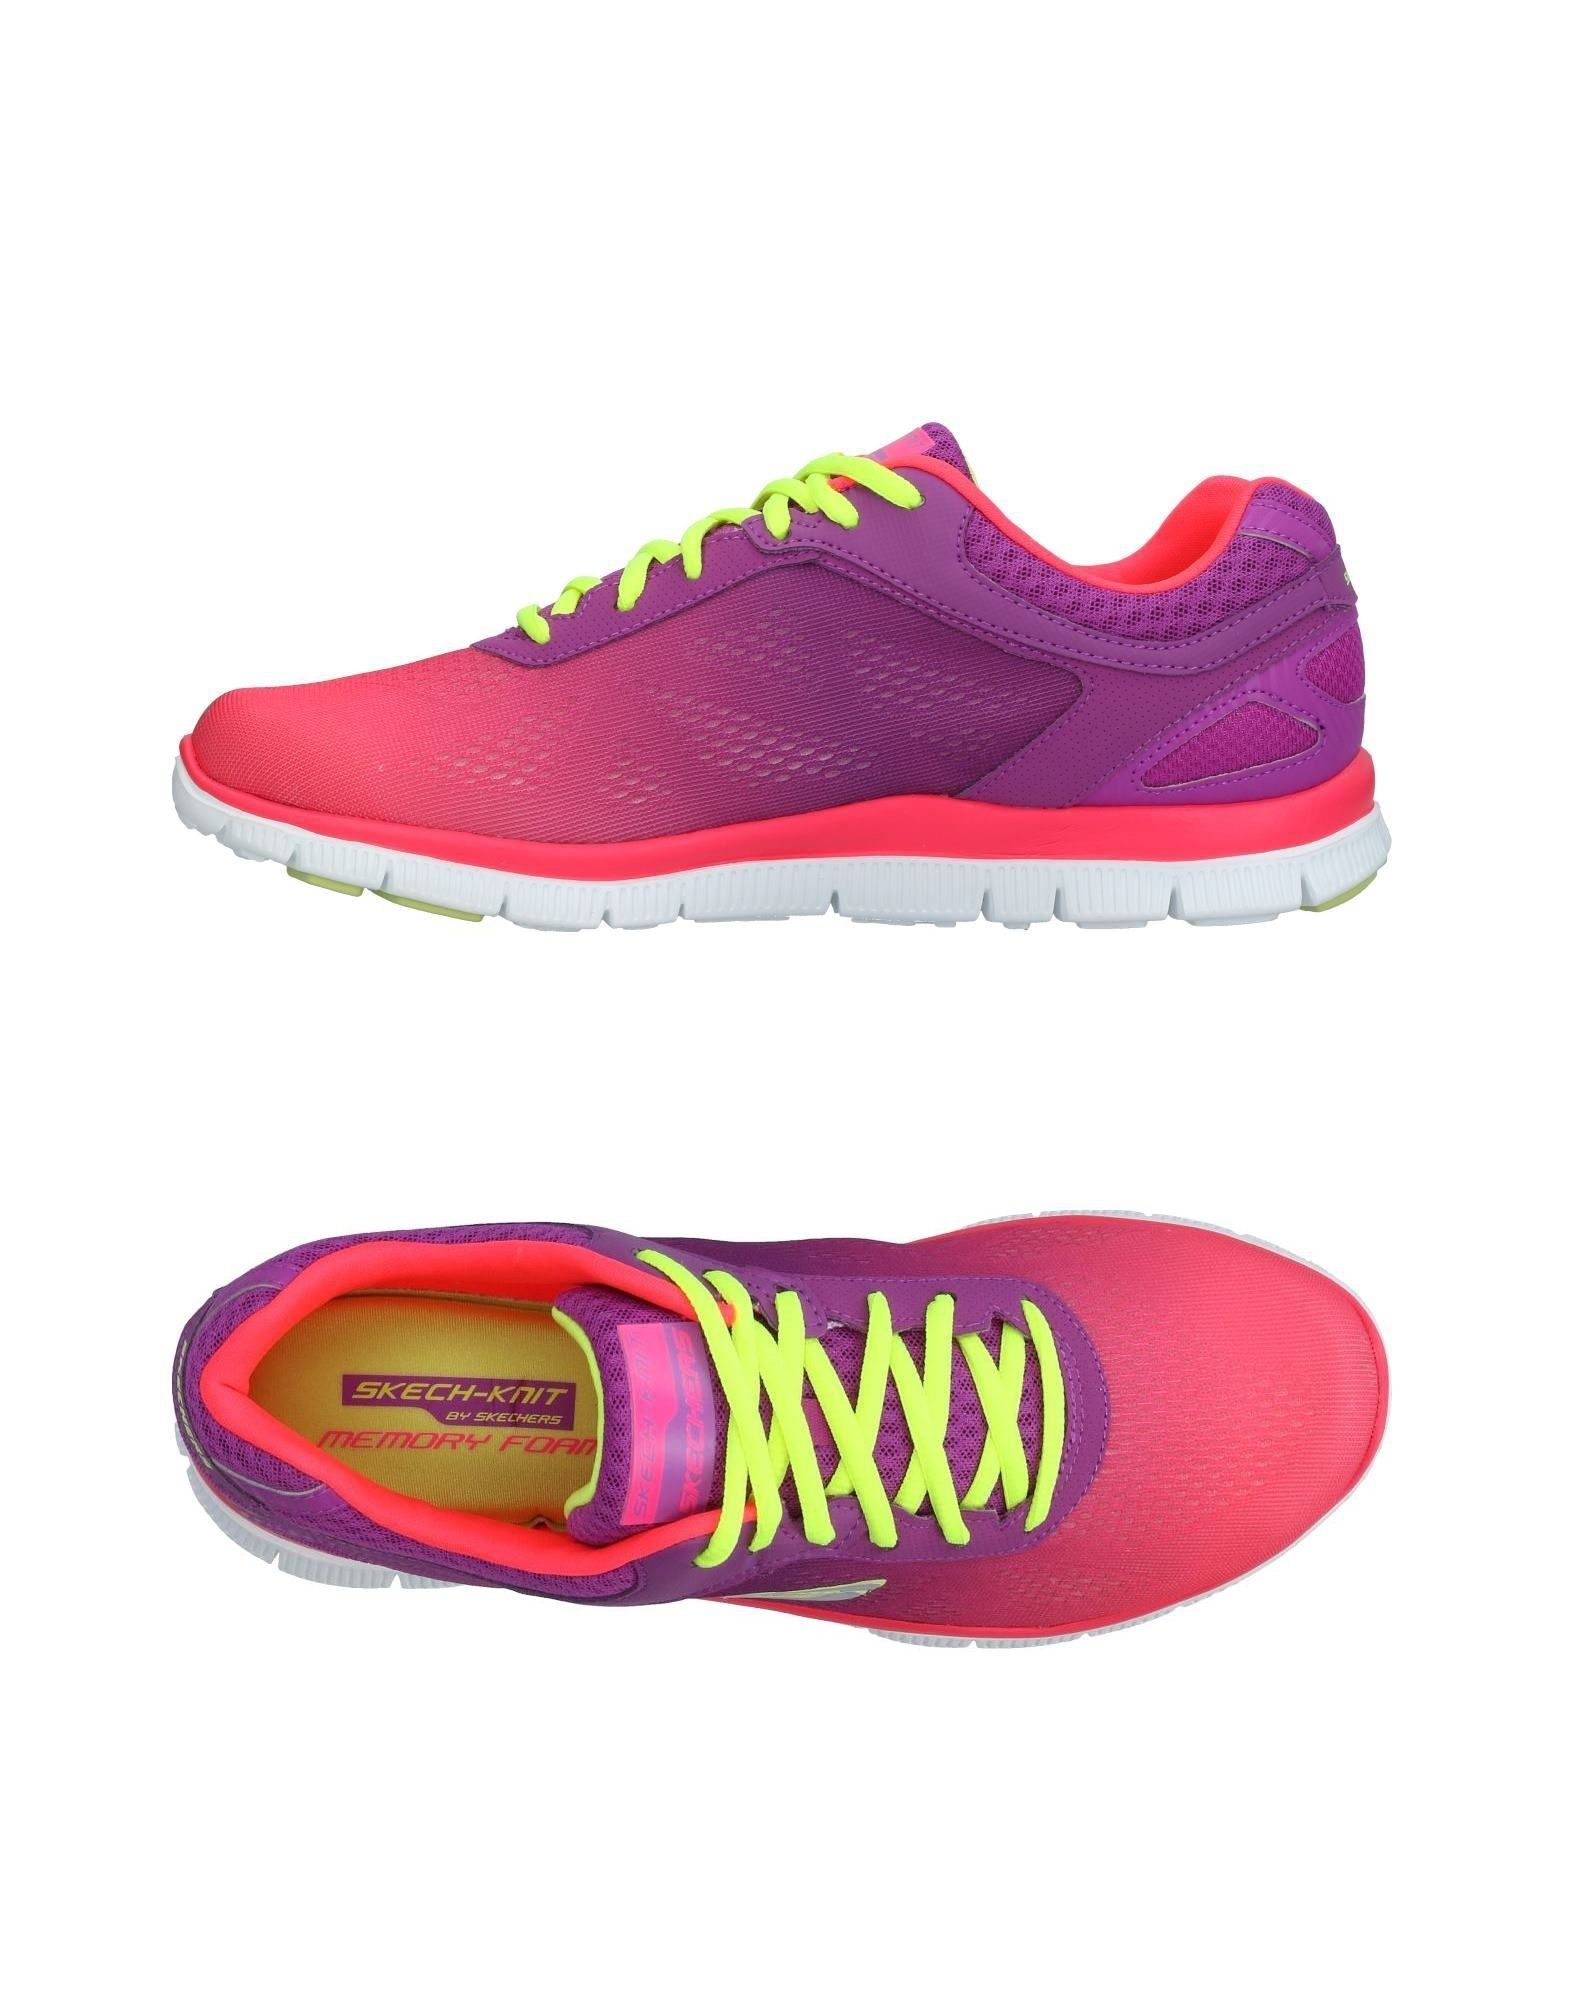 Baskets Skechers Femme - Baskets Skechers Violet clair Chaussures casual sauvages